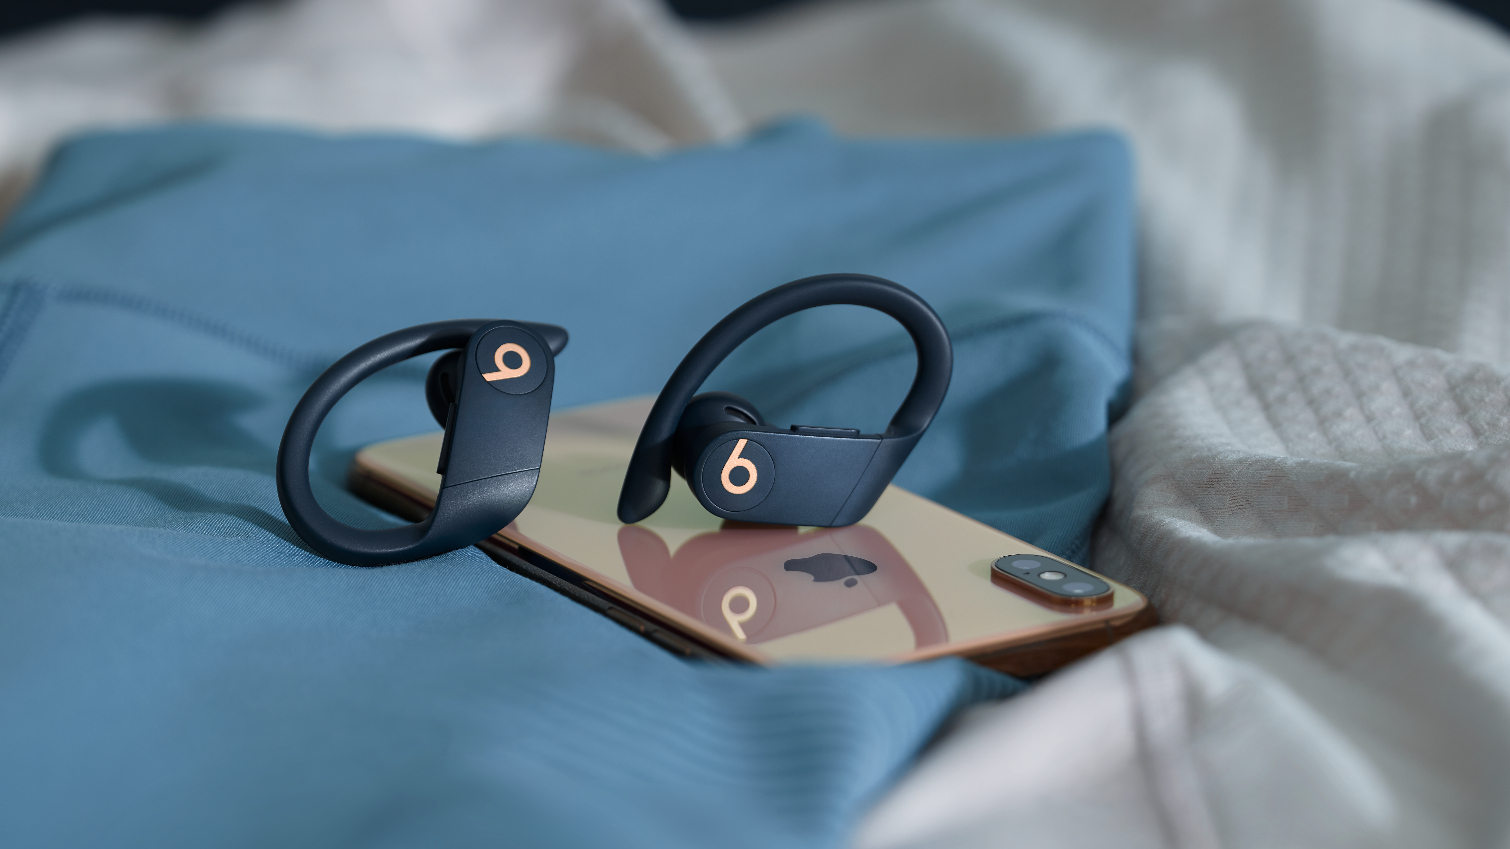 low priced 9239f c748e Beats Powerbeats Pro: Release Date, Price, Features and More | Tom's ...